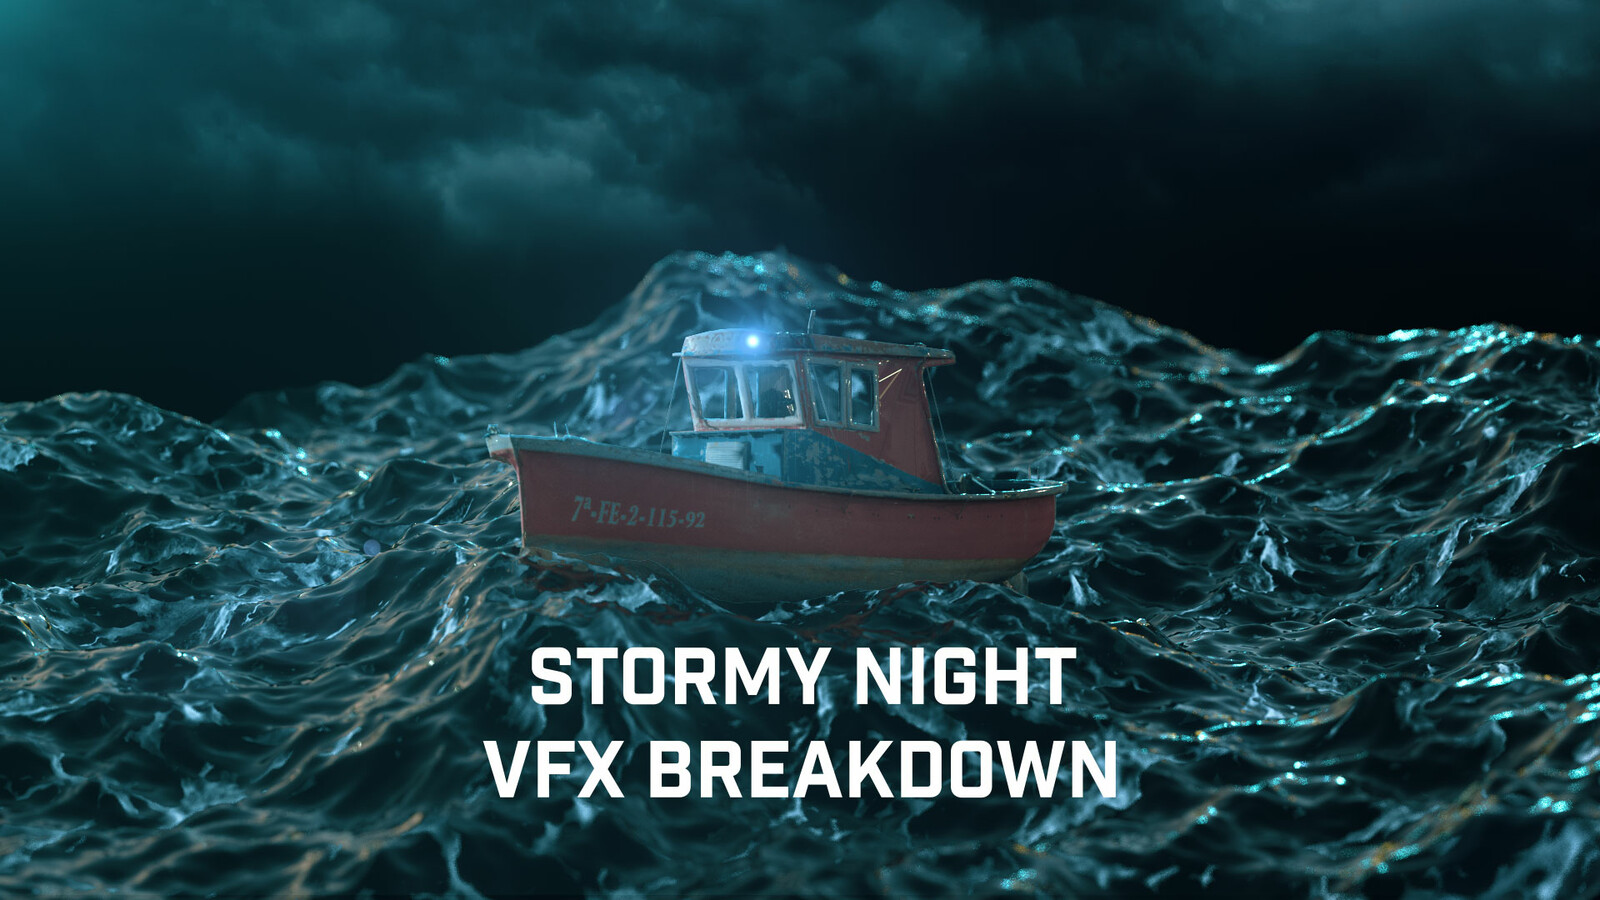 STORMY NIGHT - VFX BREAKDOWN